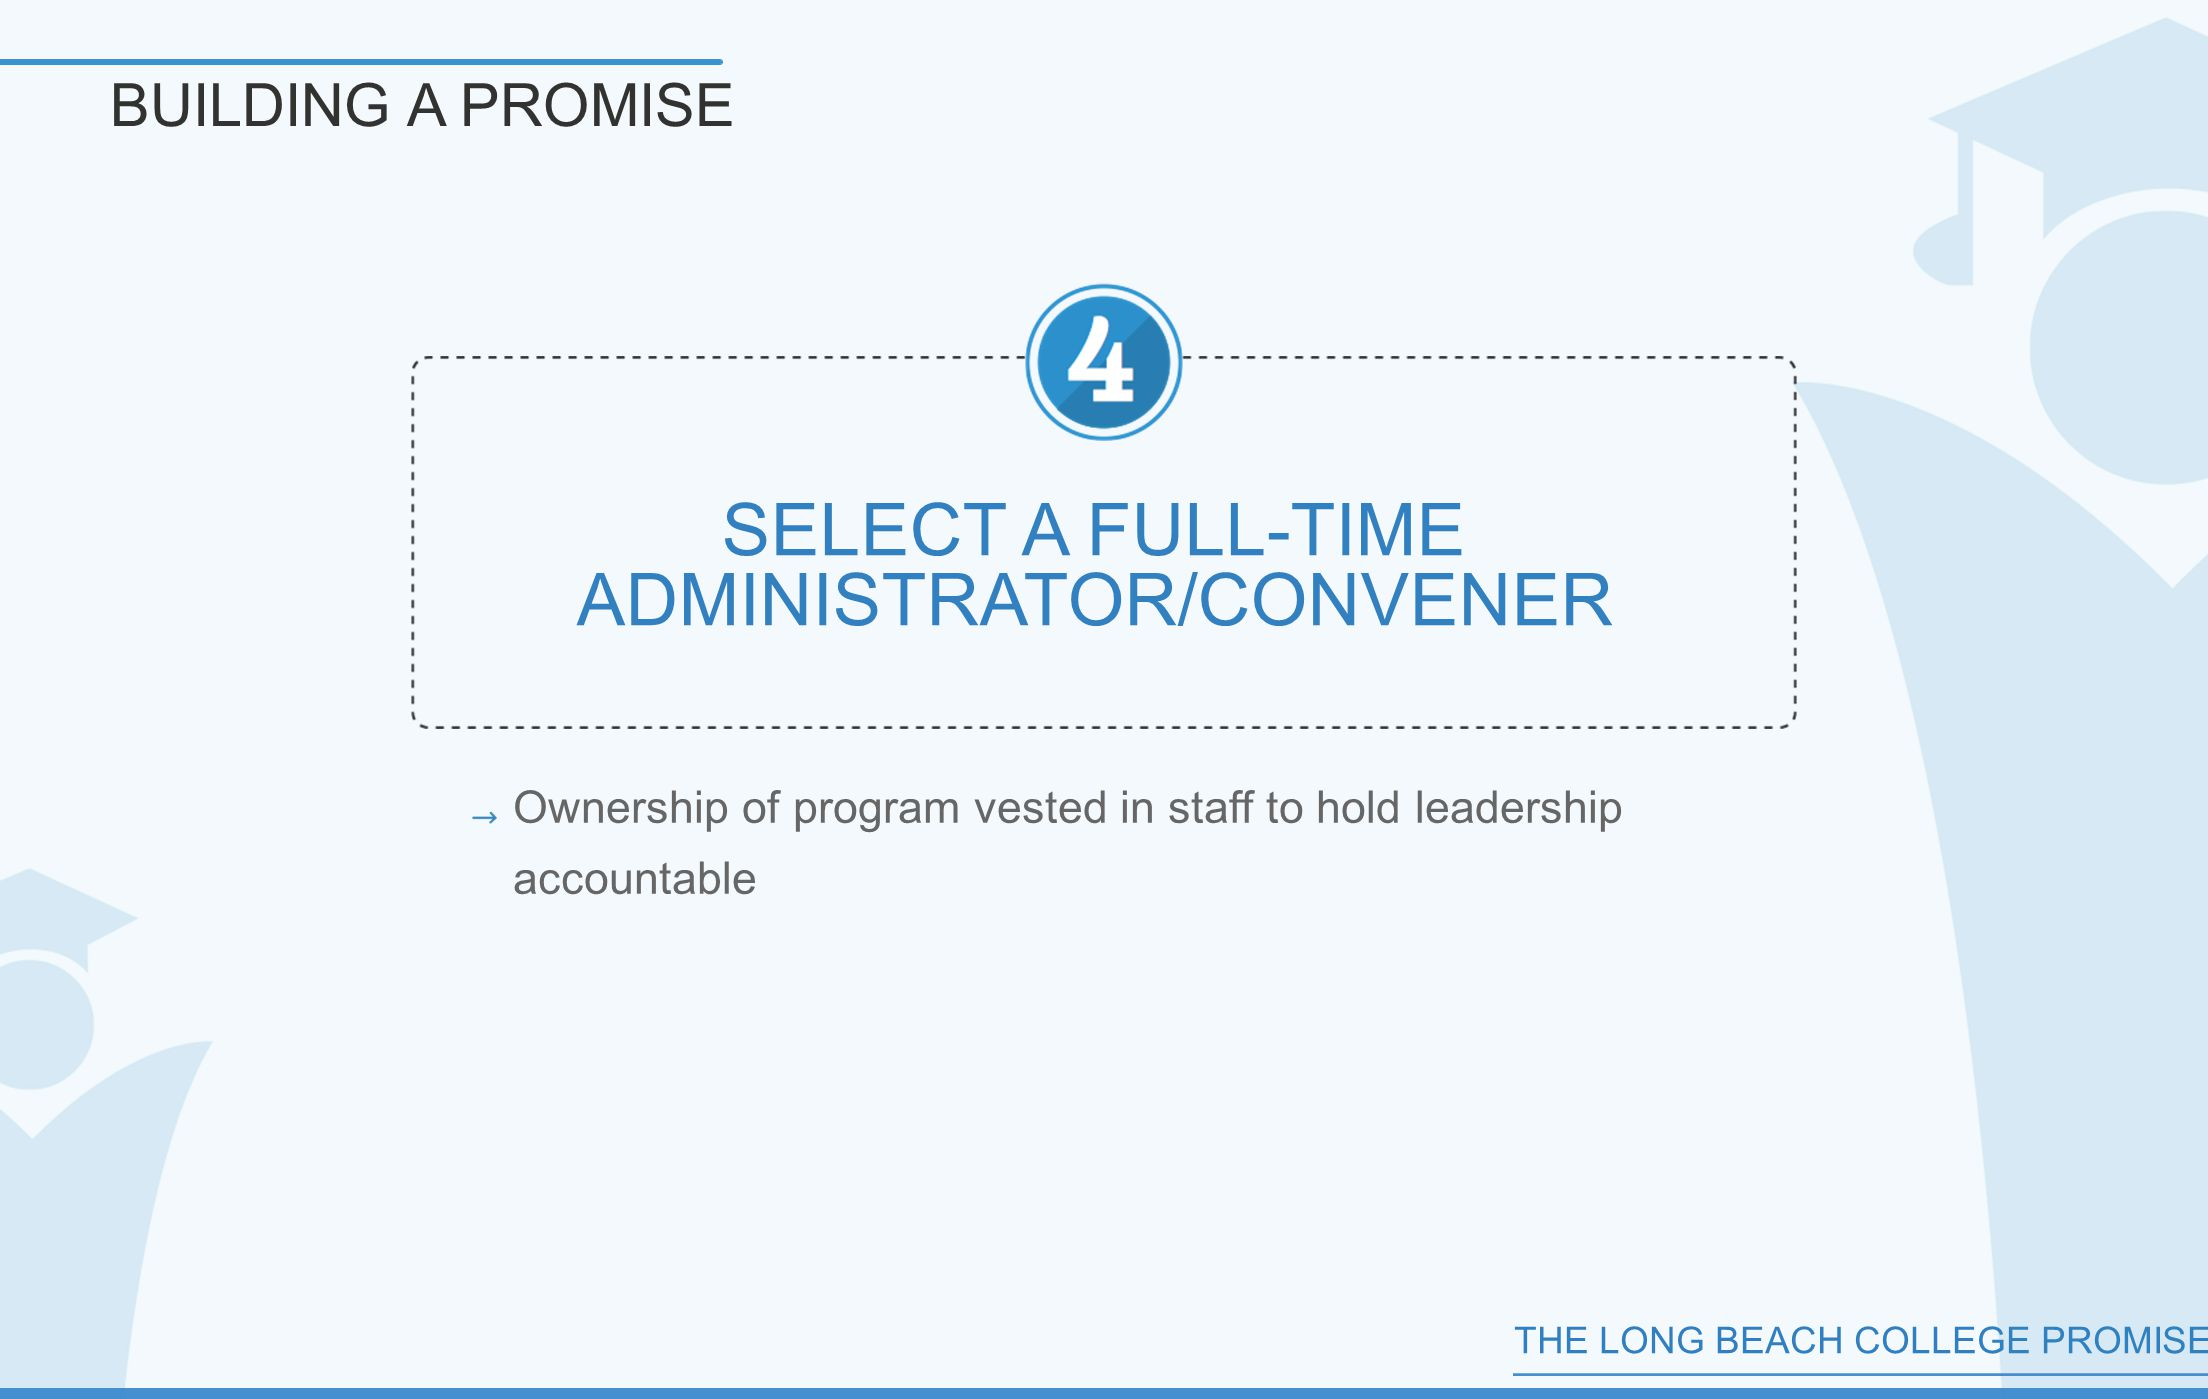 THE LONG BEACH COLLEGE PROMISE BUILDING A PROMISE SELECT A FULL-TIME ADMINISTRATOR/CONVENER Ownership of program vested in staff to hold leadership accountable